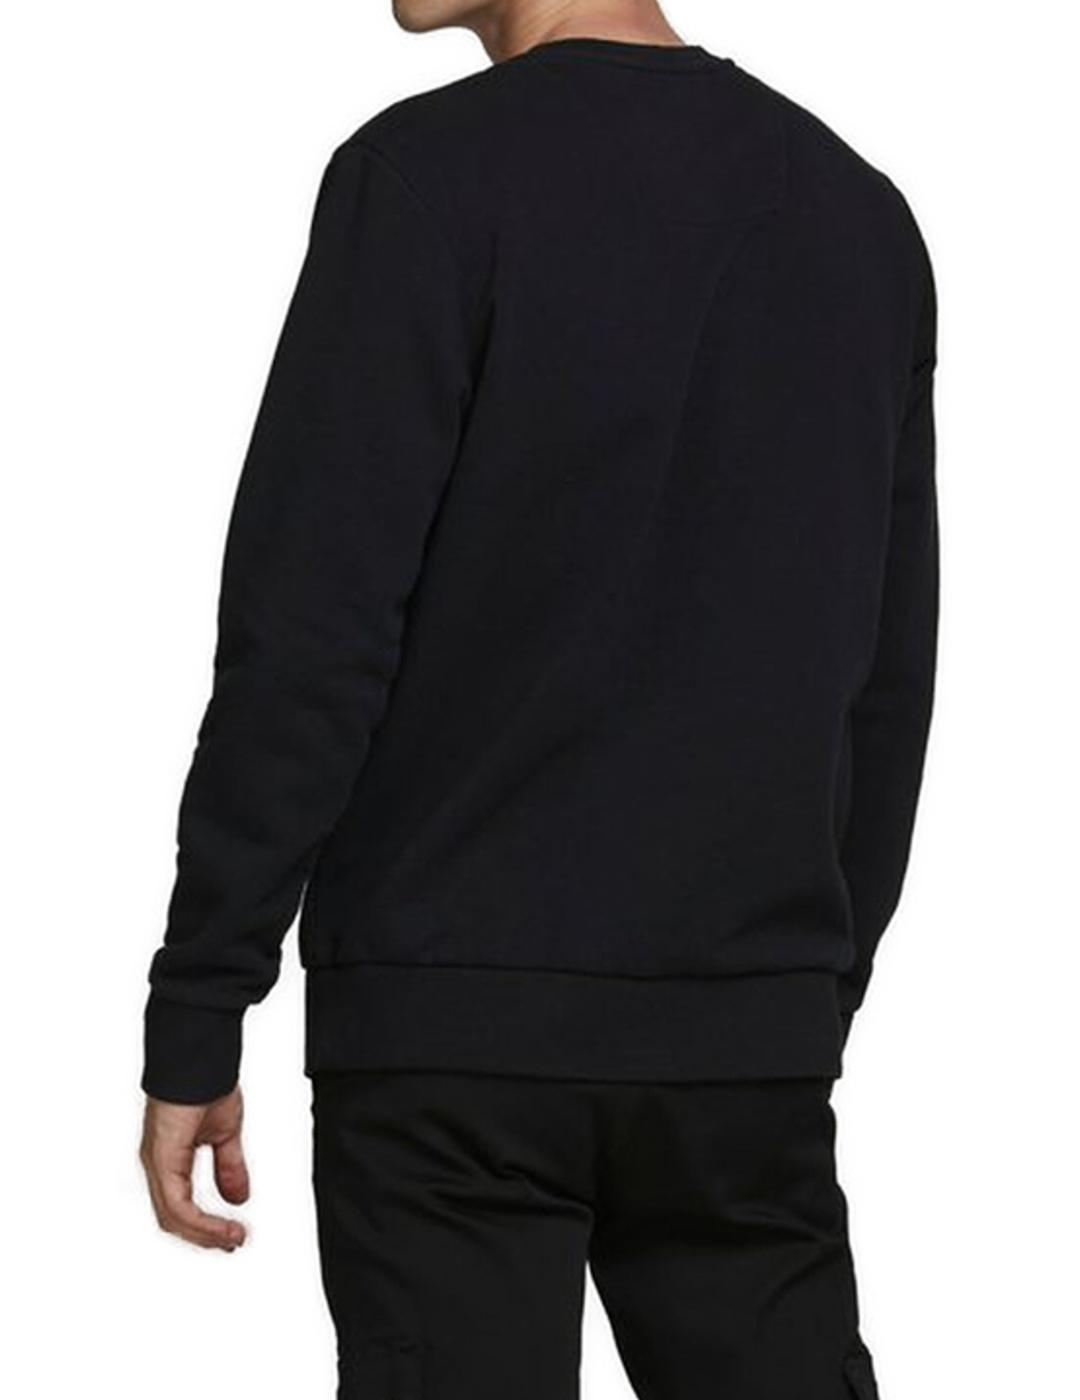 JCOSUPERMARIO SWEAT CREW NECK BLACK-X